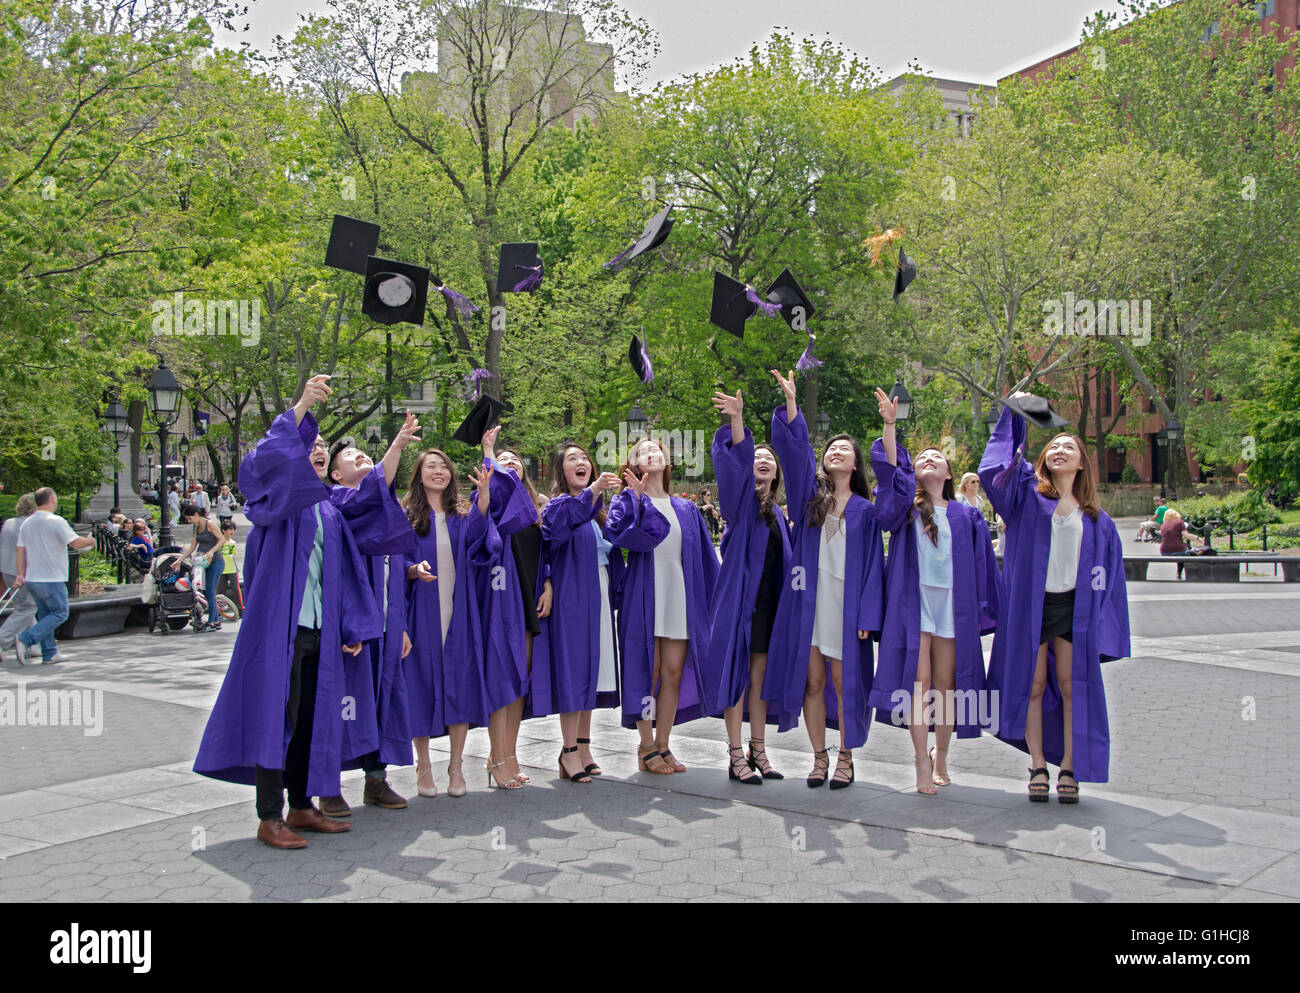 Asian NYU graduates throw their caps in the air for a graduation group photo in Washington Square Park in New York - Stock Image